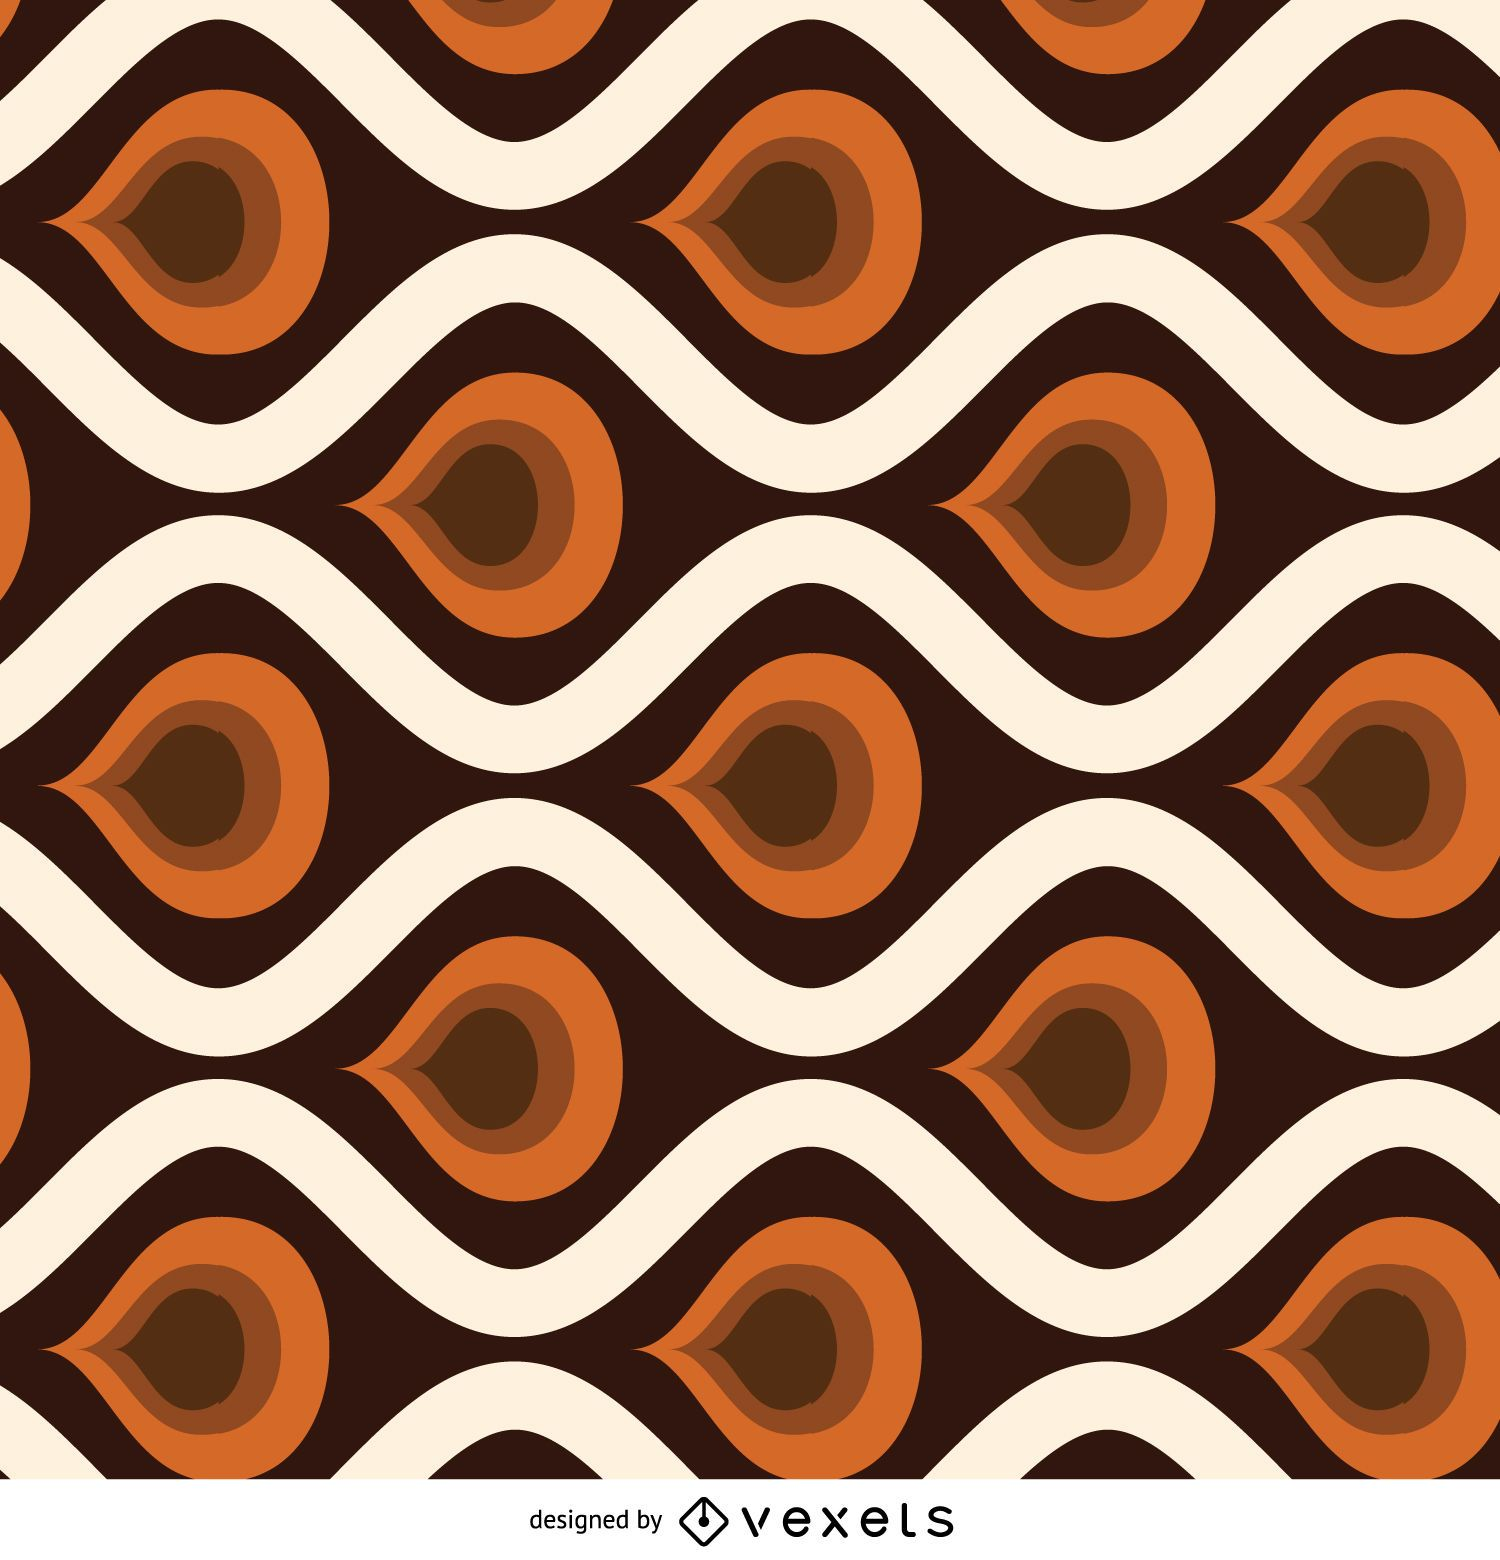 Retro abstract tile pattern